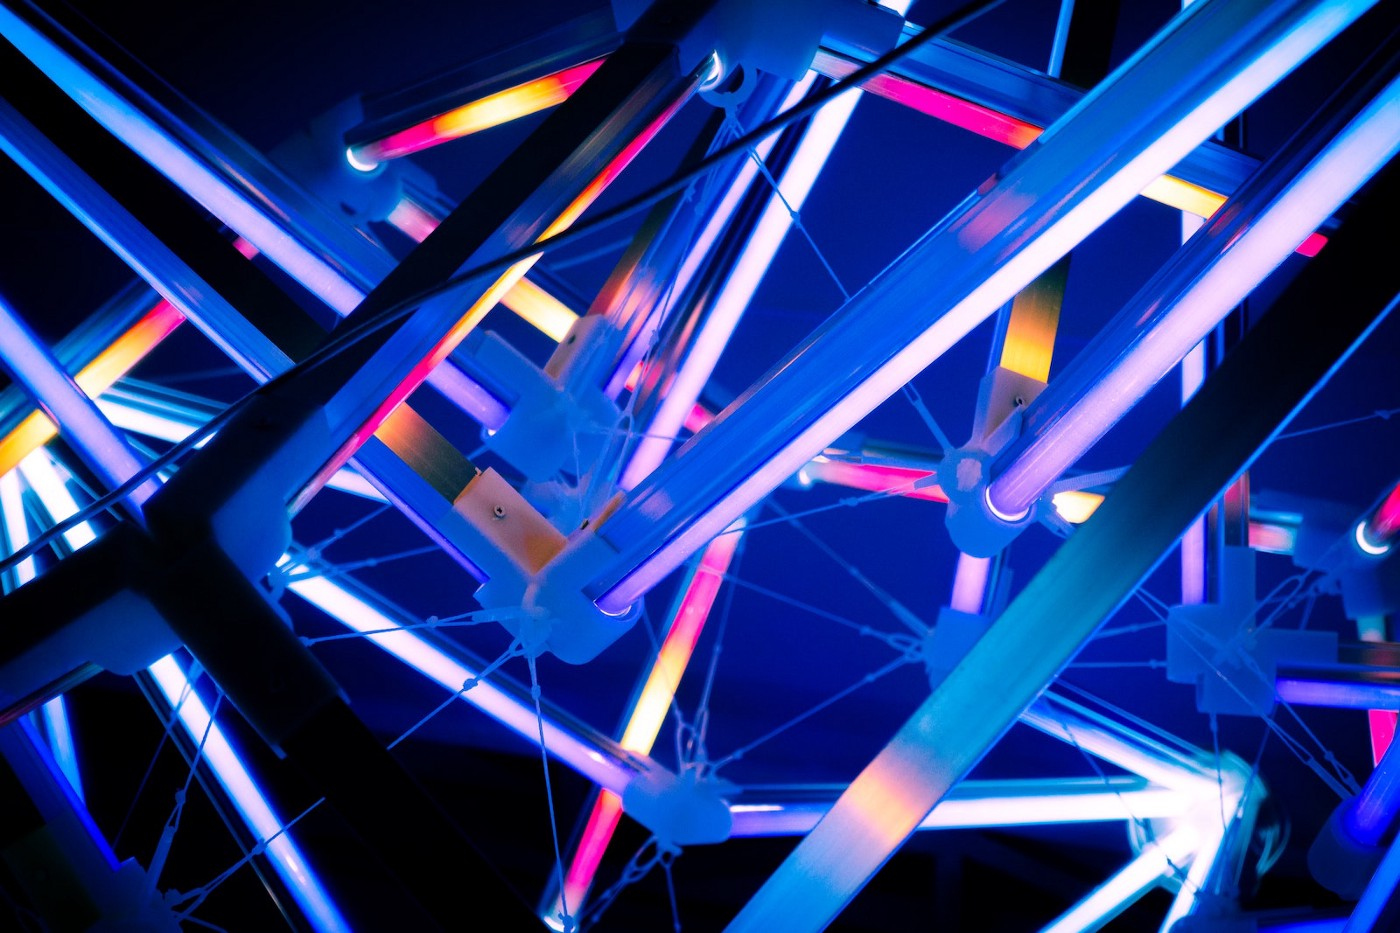 An abstract glowing line pattern created by pipes and spokes